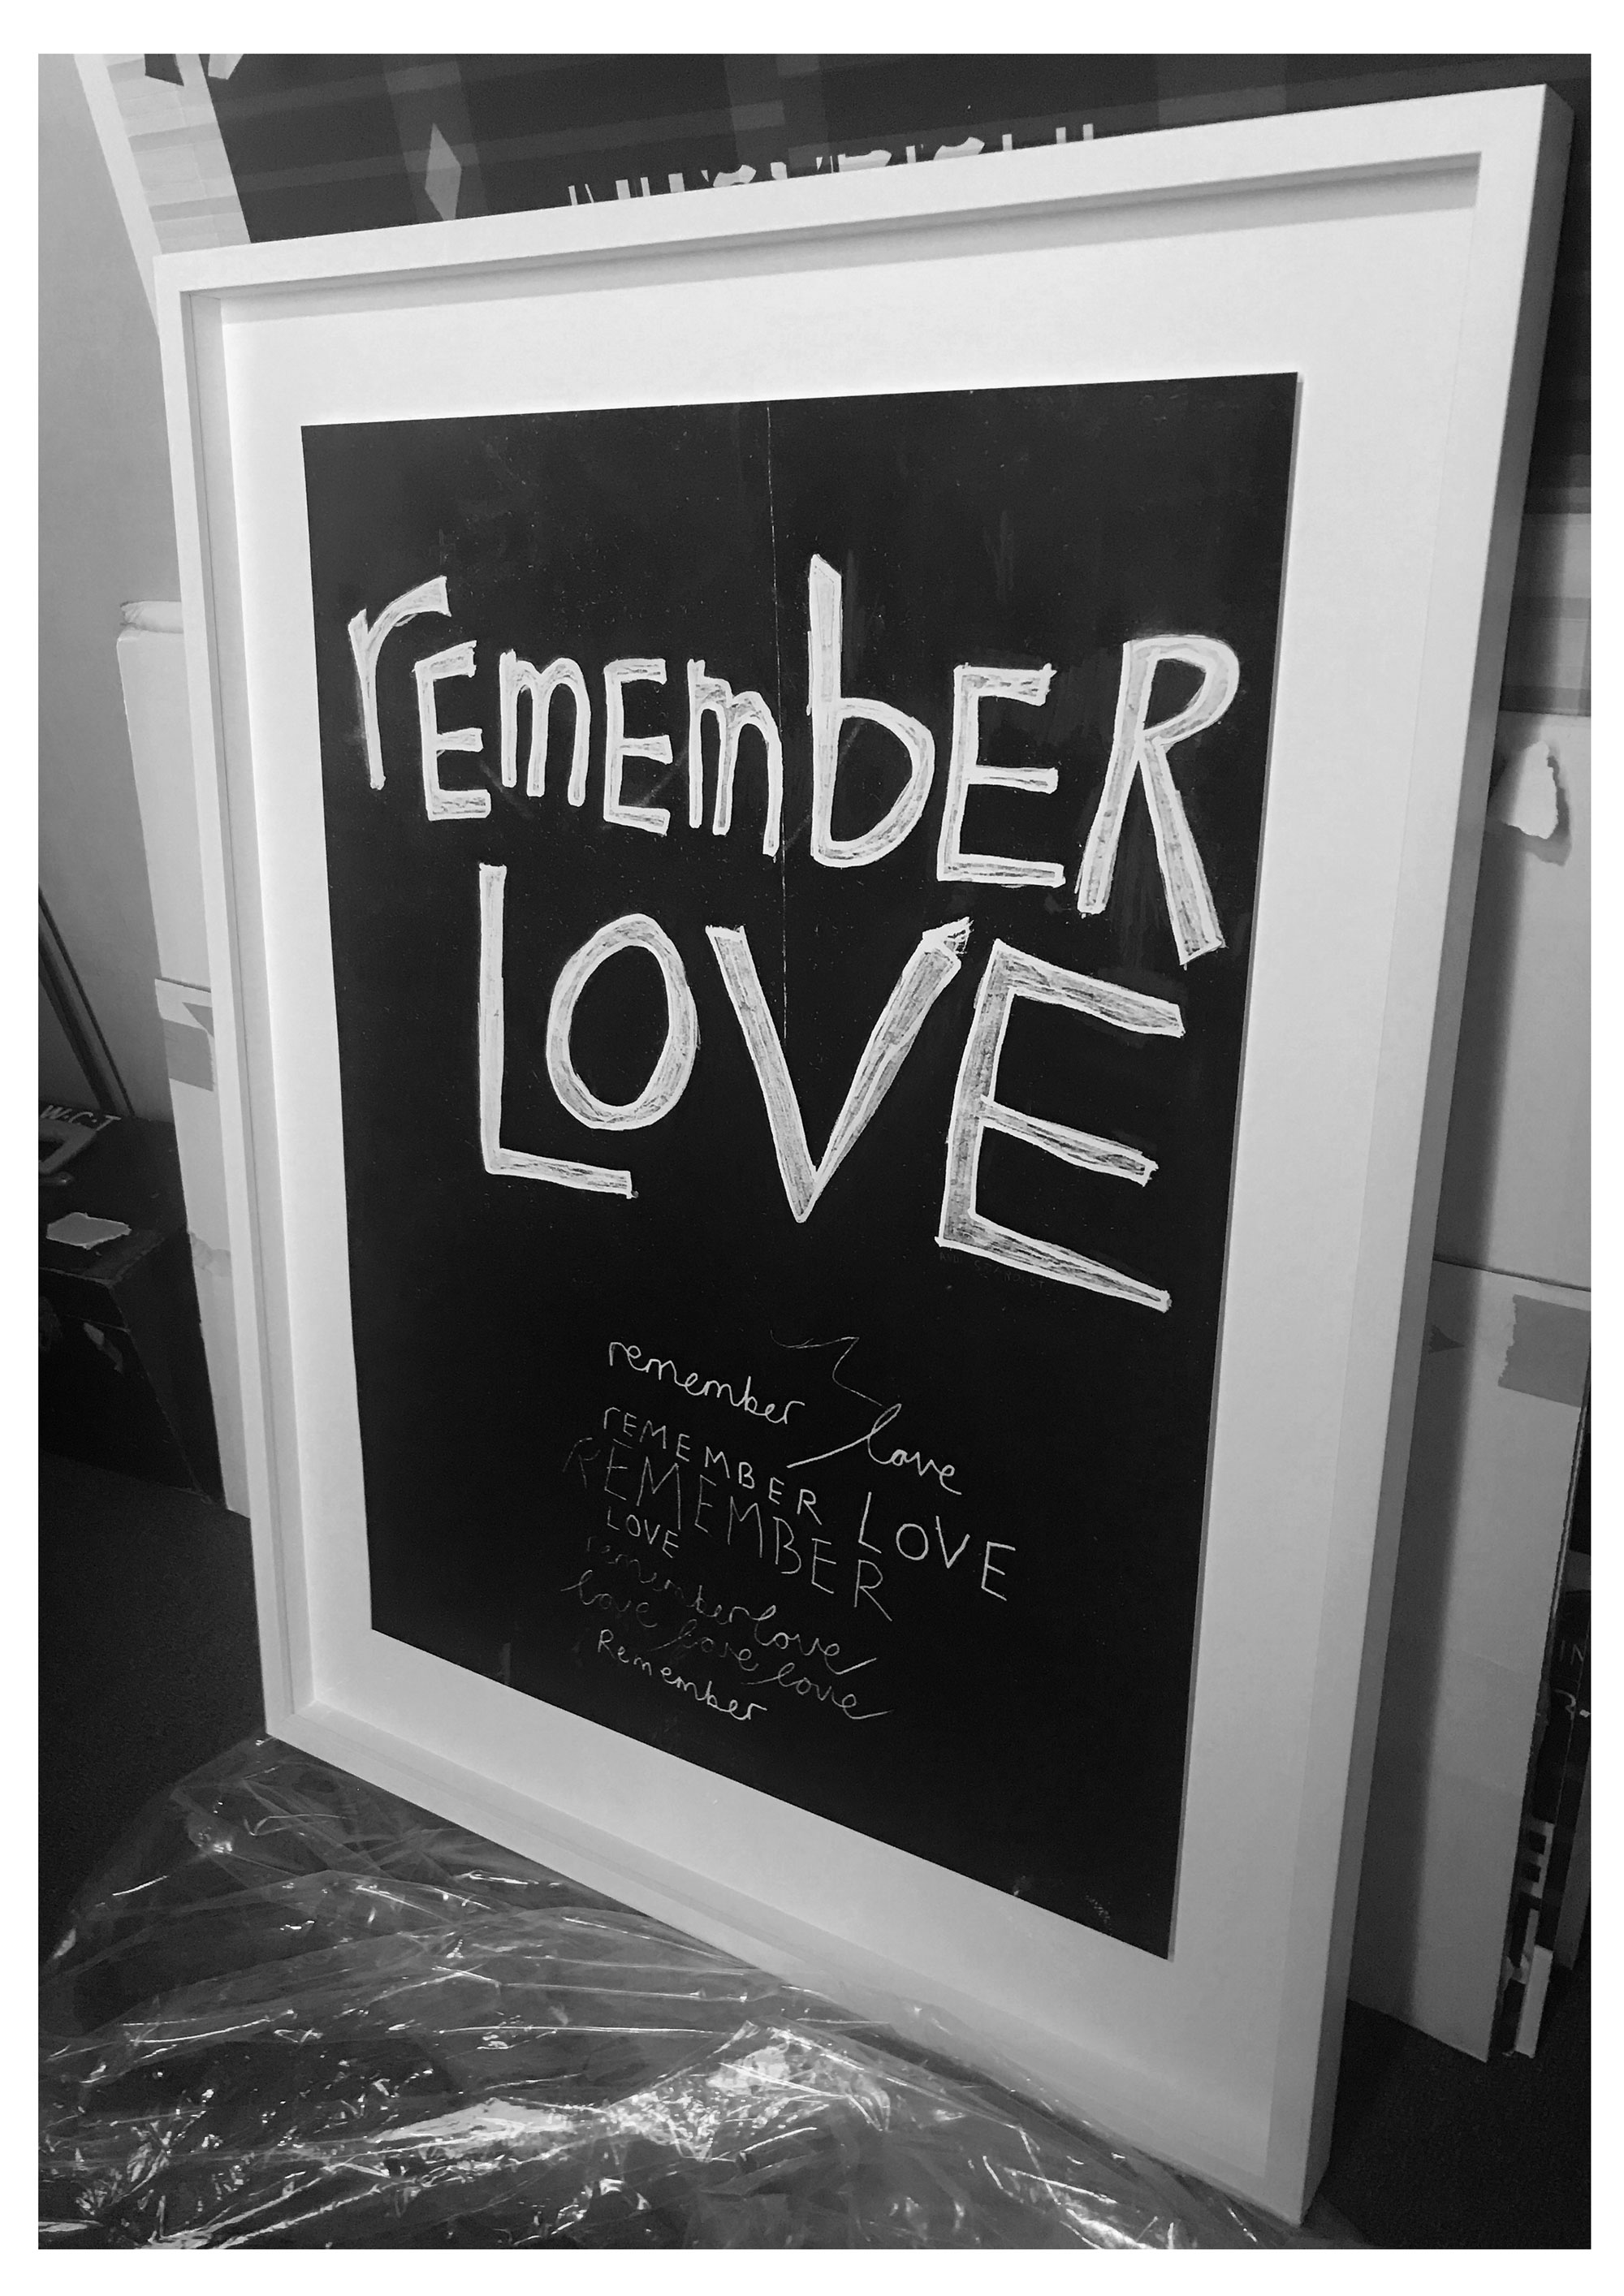 Remember love [and stardust], for J.D and A.B, December 2017